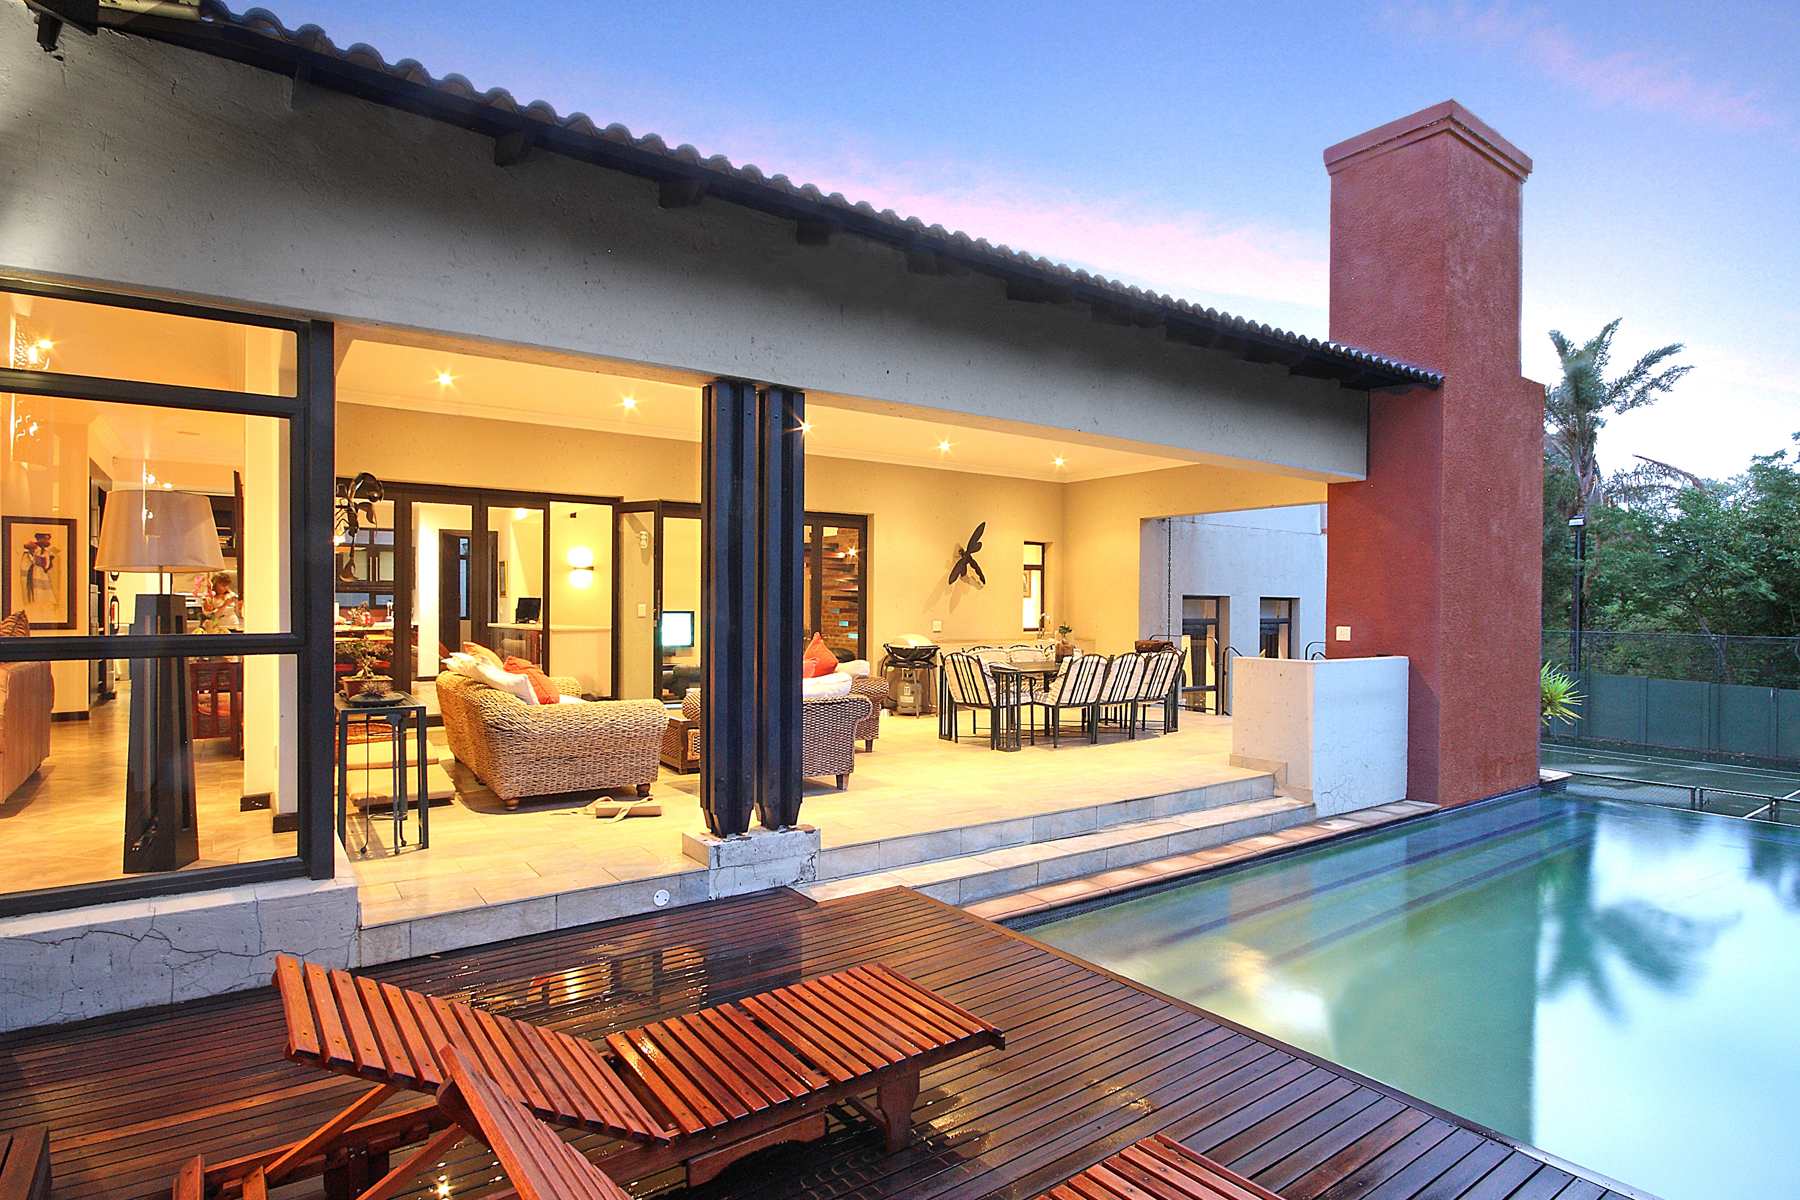 Single Family Home for Sale at Hurlingham Hurlingham, Johannesburg, Gauteng South Africa